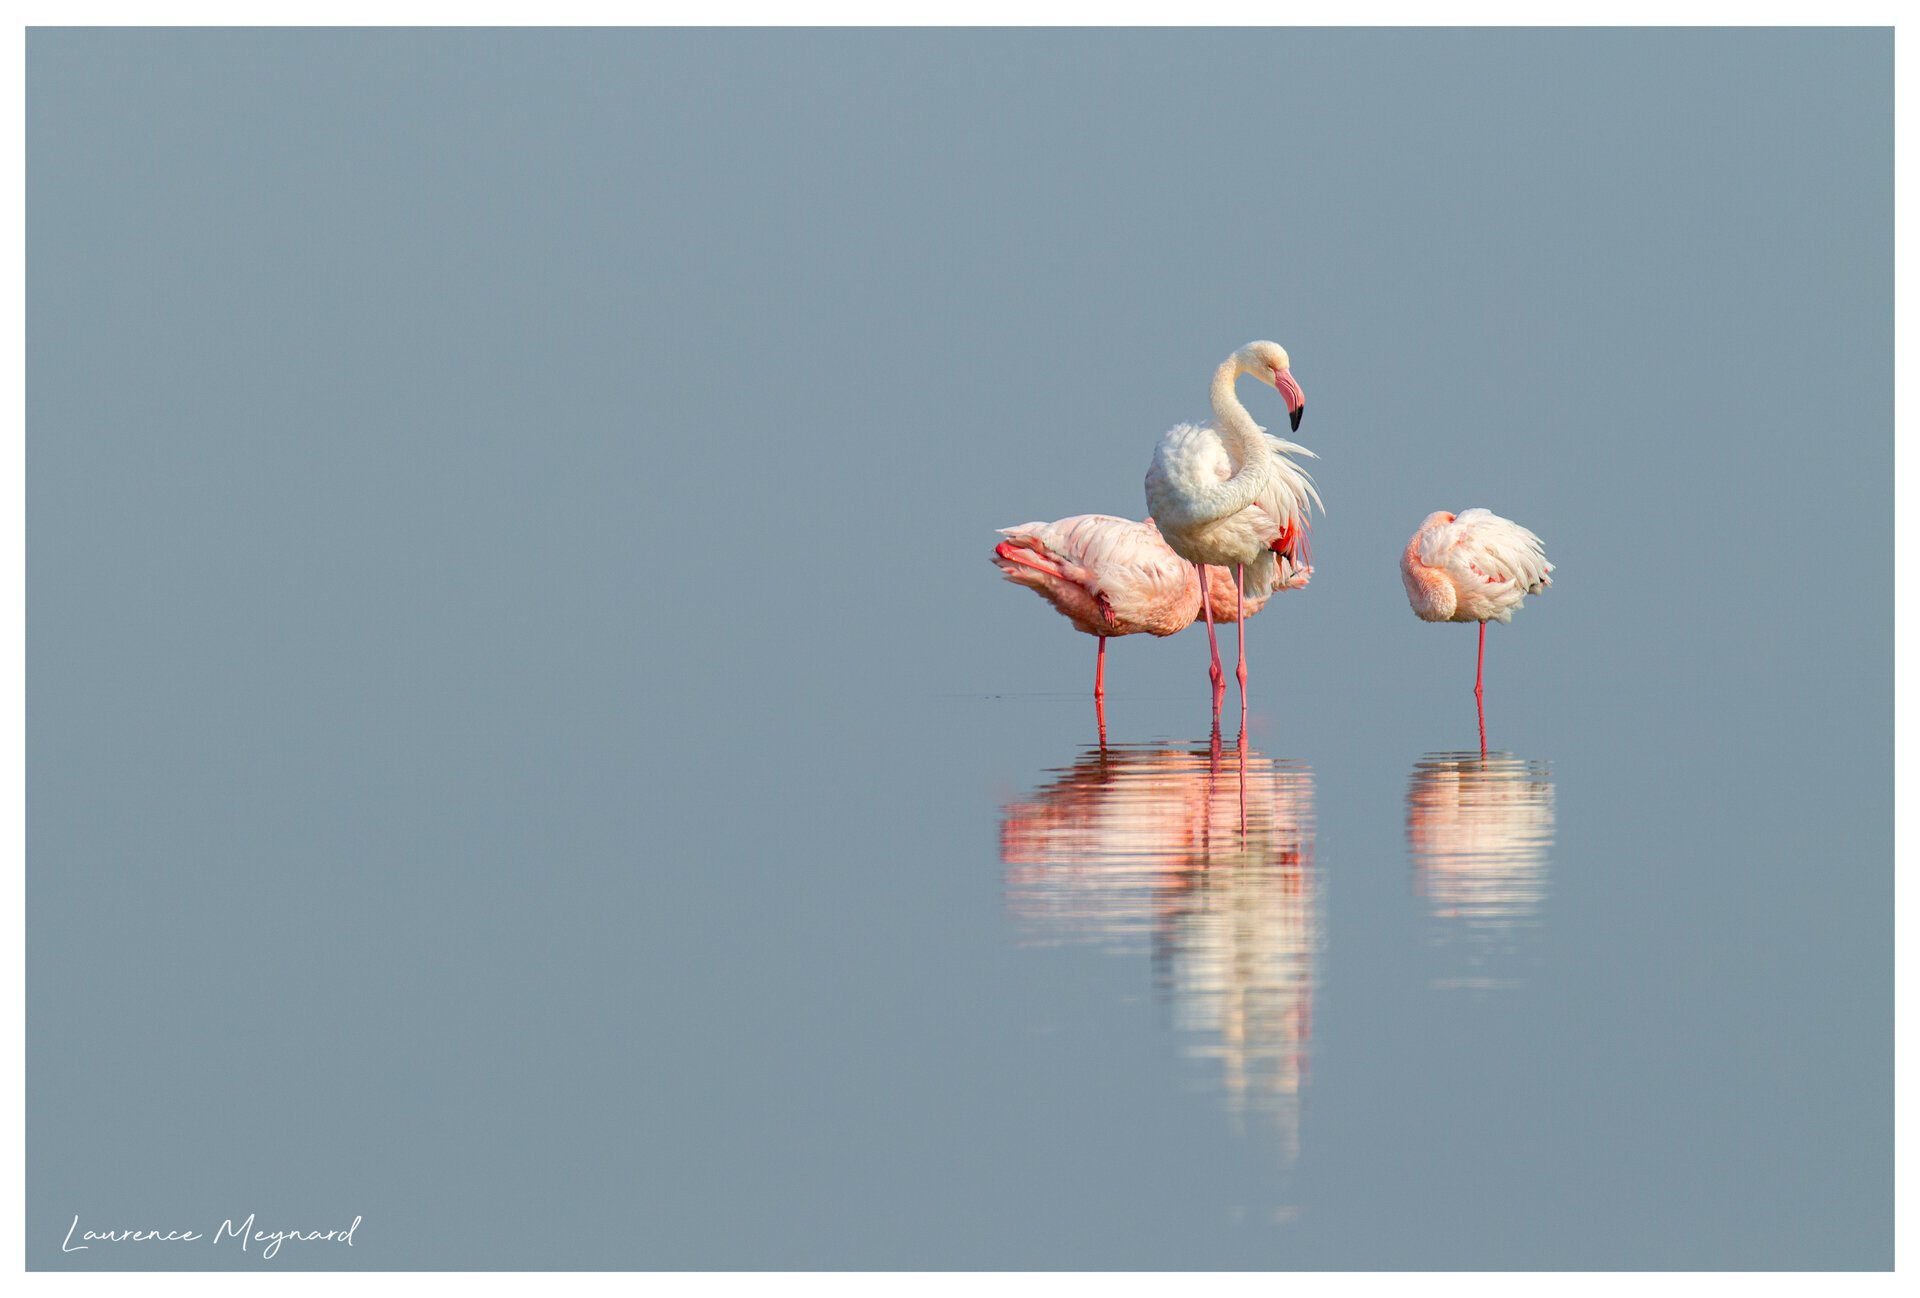 Flamants dans la brume